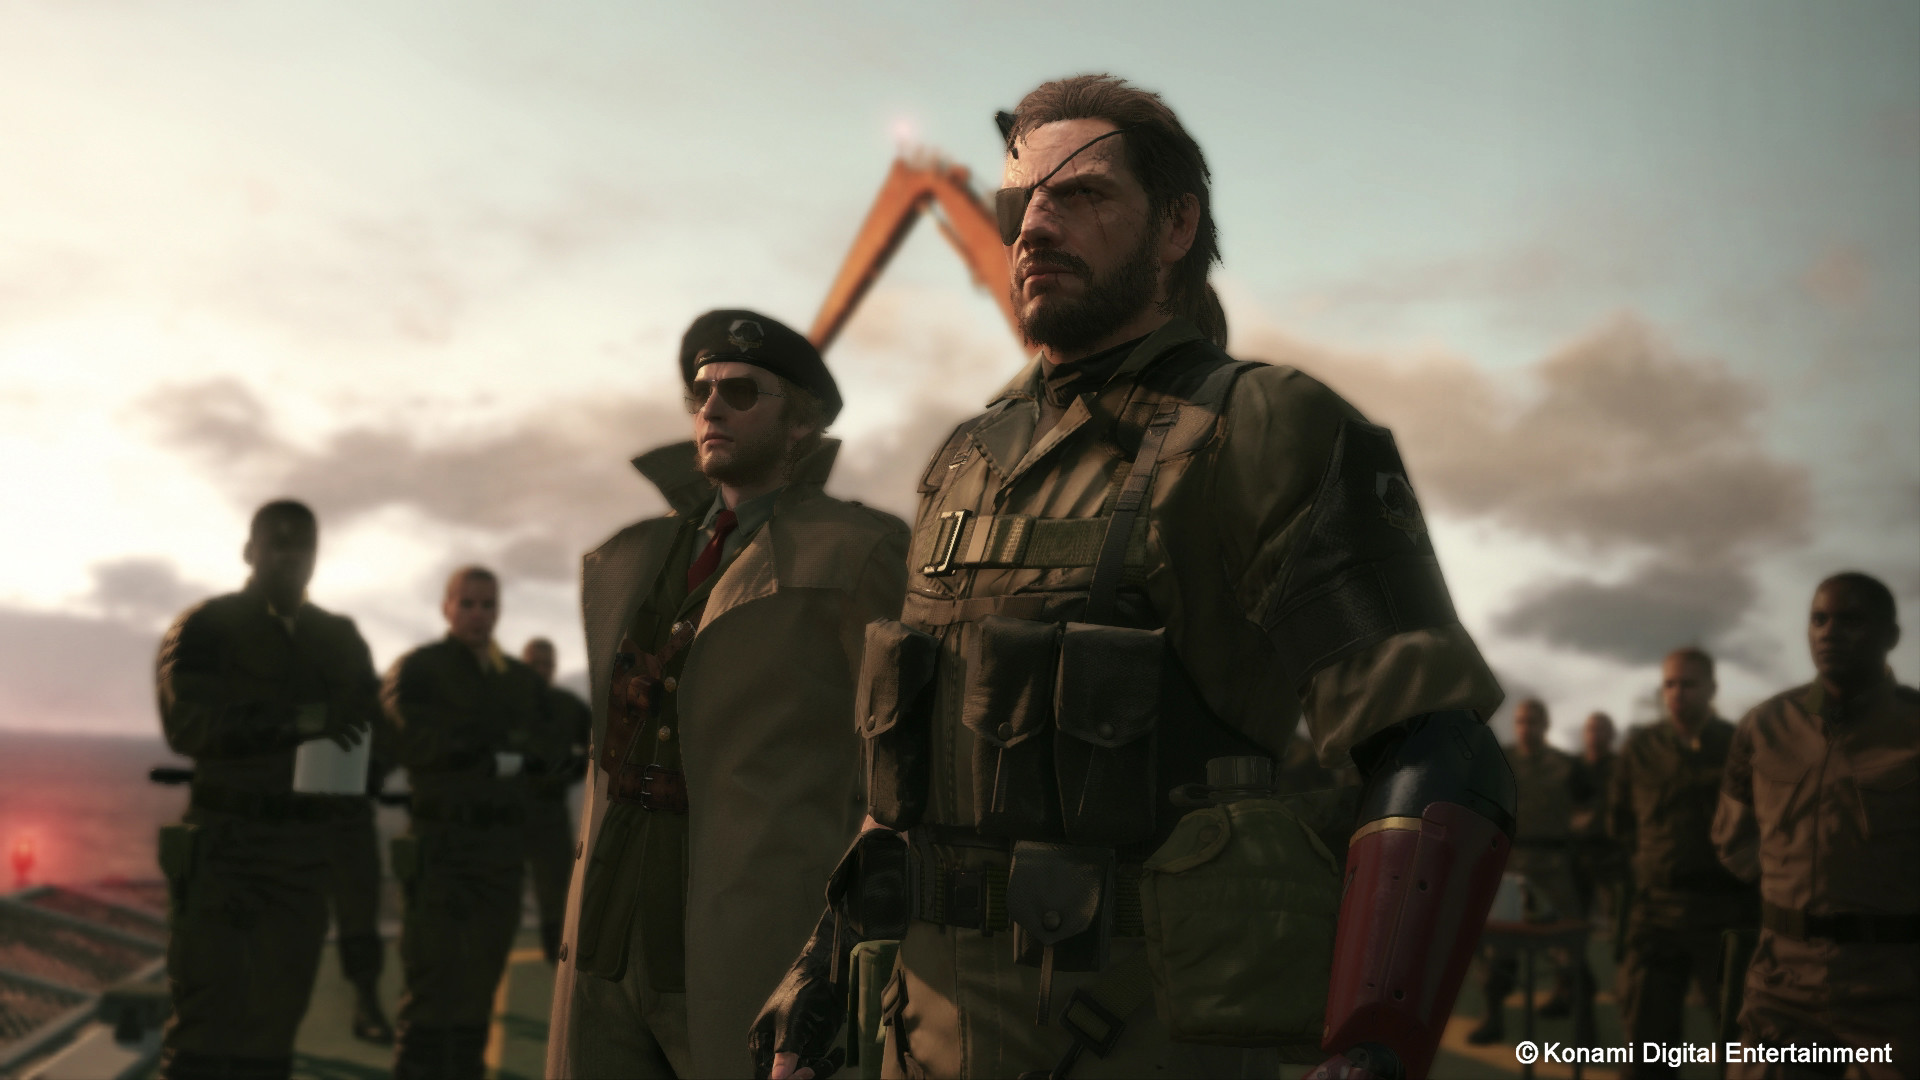 New Metal Gear Solid 5 Video Teases the Mute Assassin Quiet   Bob's Blog